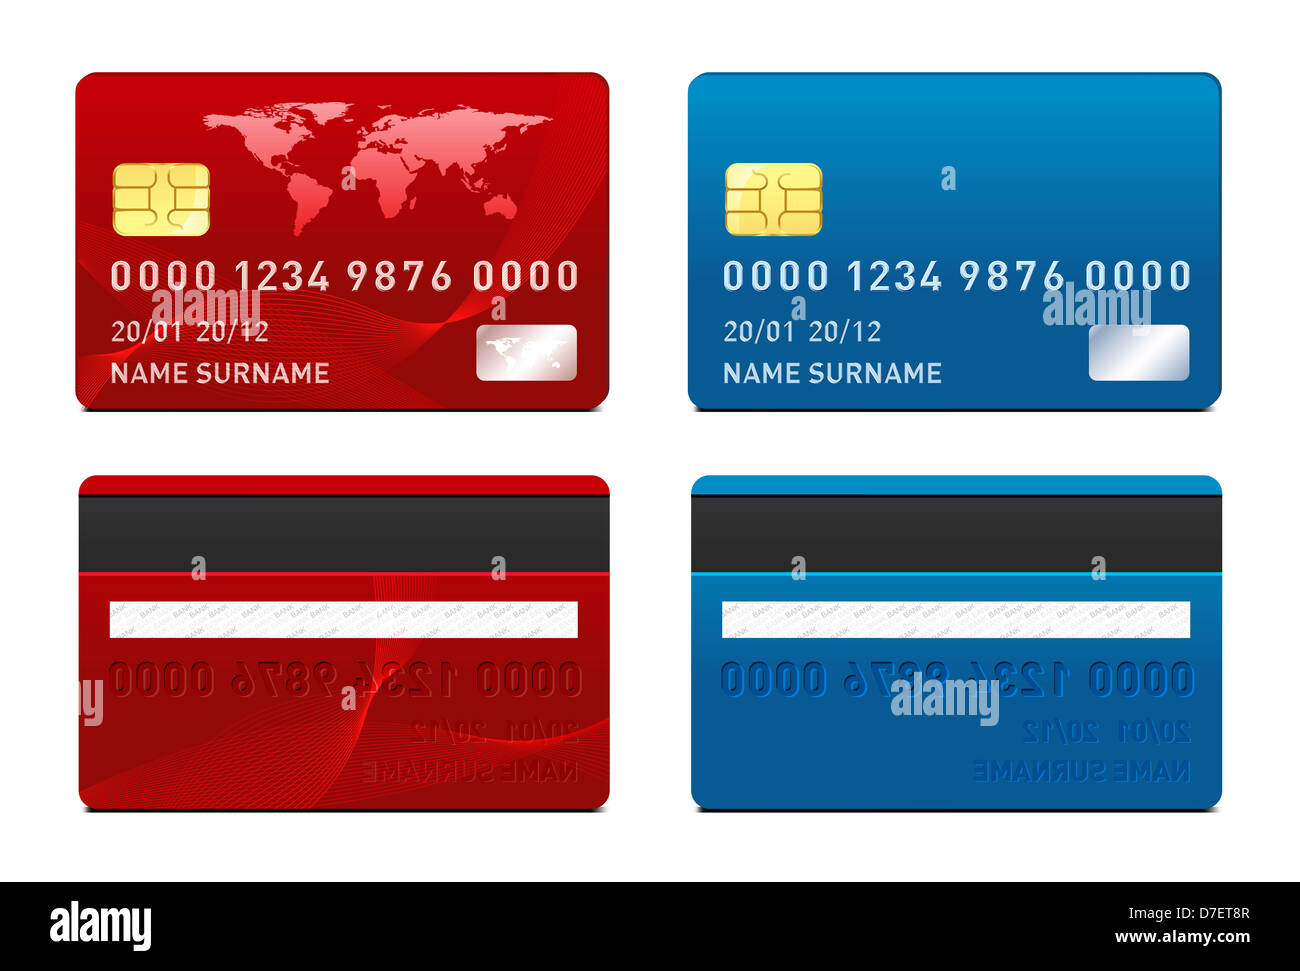 Credit Card Template. Front And Back Side.   Stock Image  Credit Card Template Word